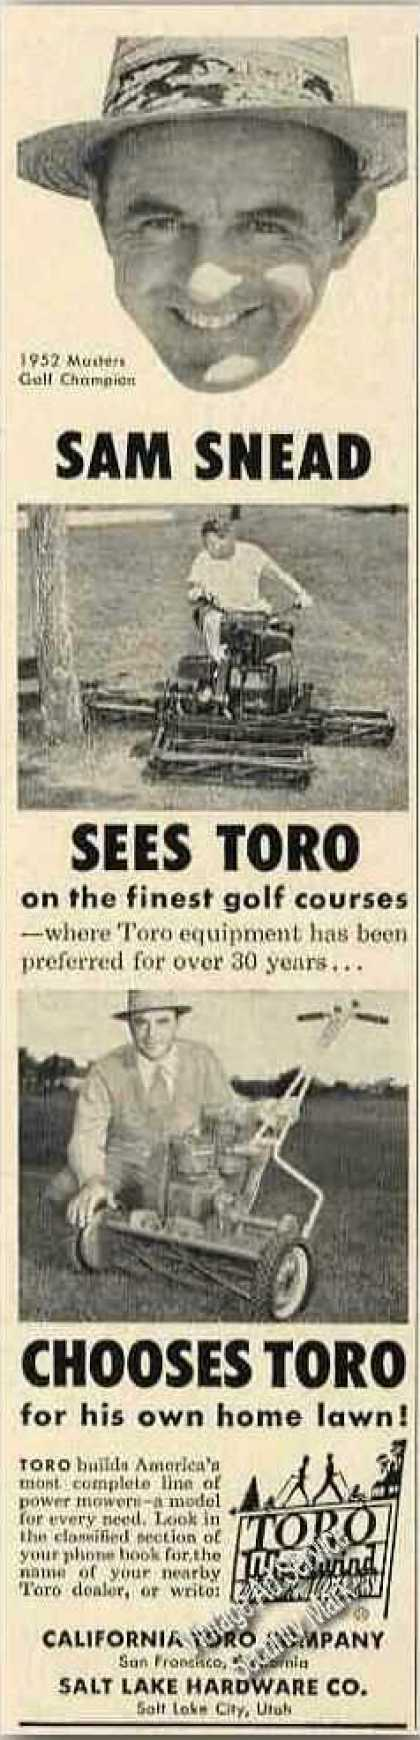 Sam Snead (1952 Masters) Photo Toro (1953)